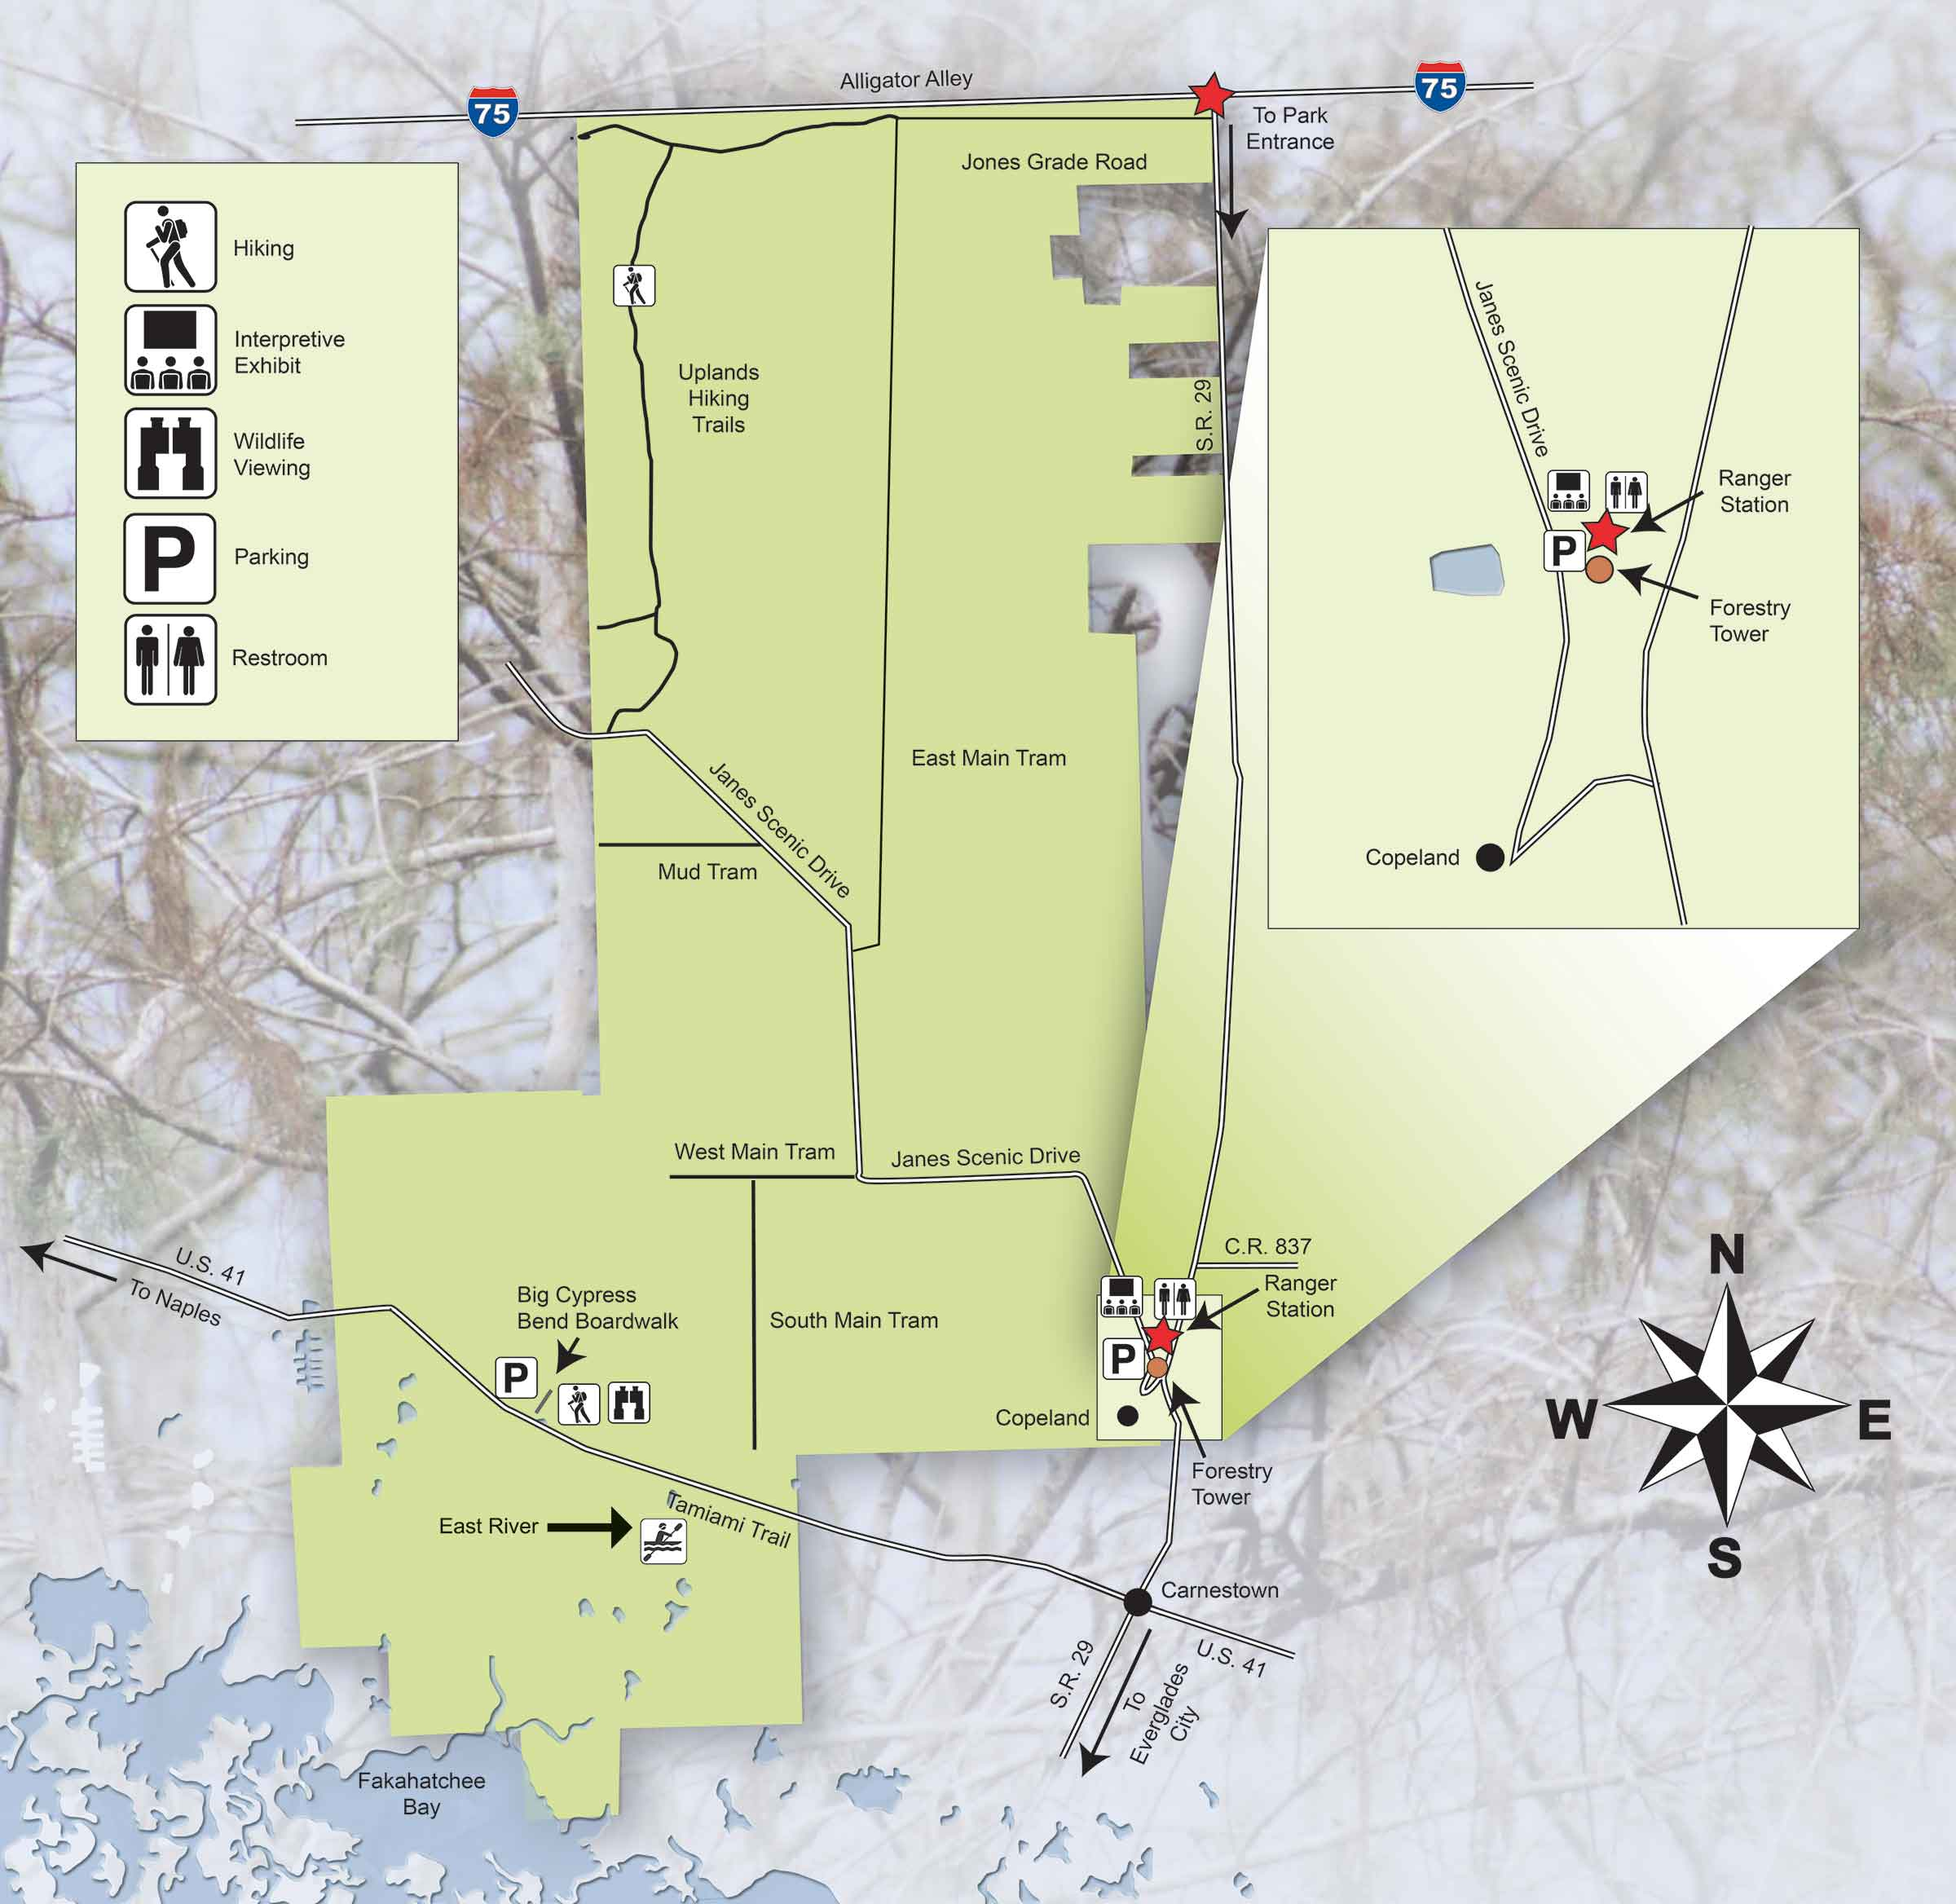 Hiking and Biking the StrandFriends of Fakahatchee on orienteering map, hiking tours, hiking trail, following a map, trail map, hunting map, space exploration map, hiking tracks, nature map, places to go map, hiking tips,